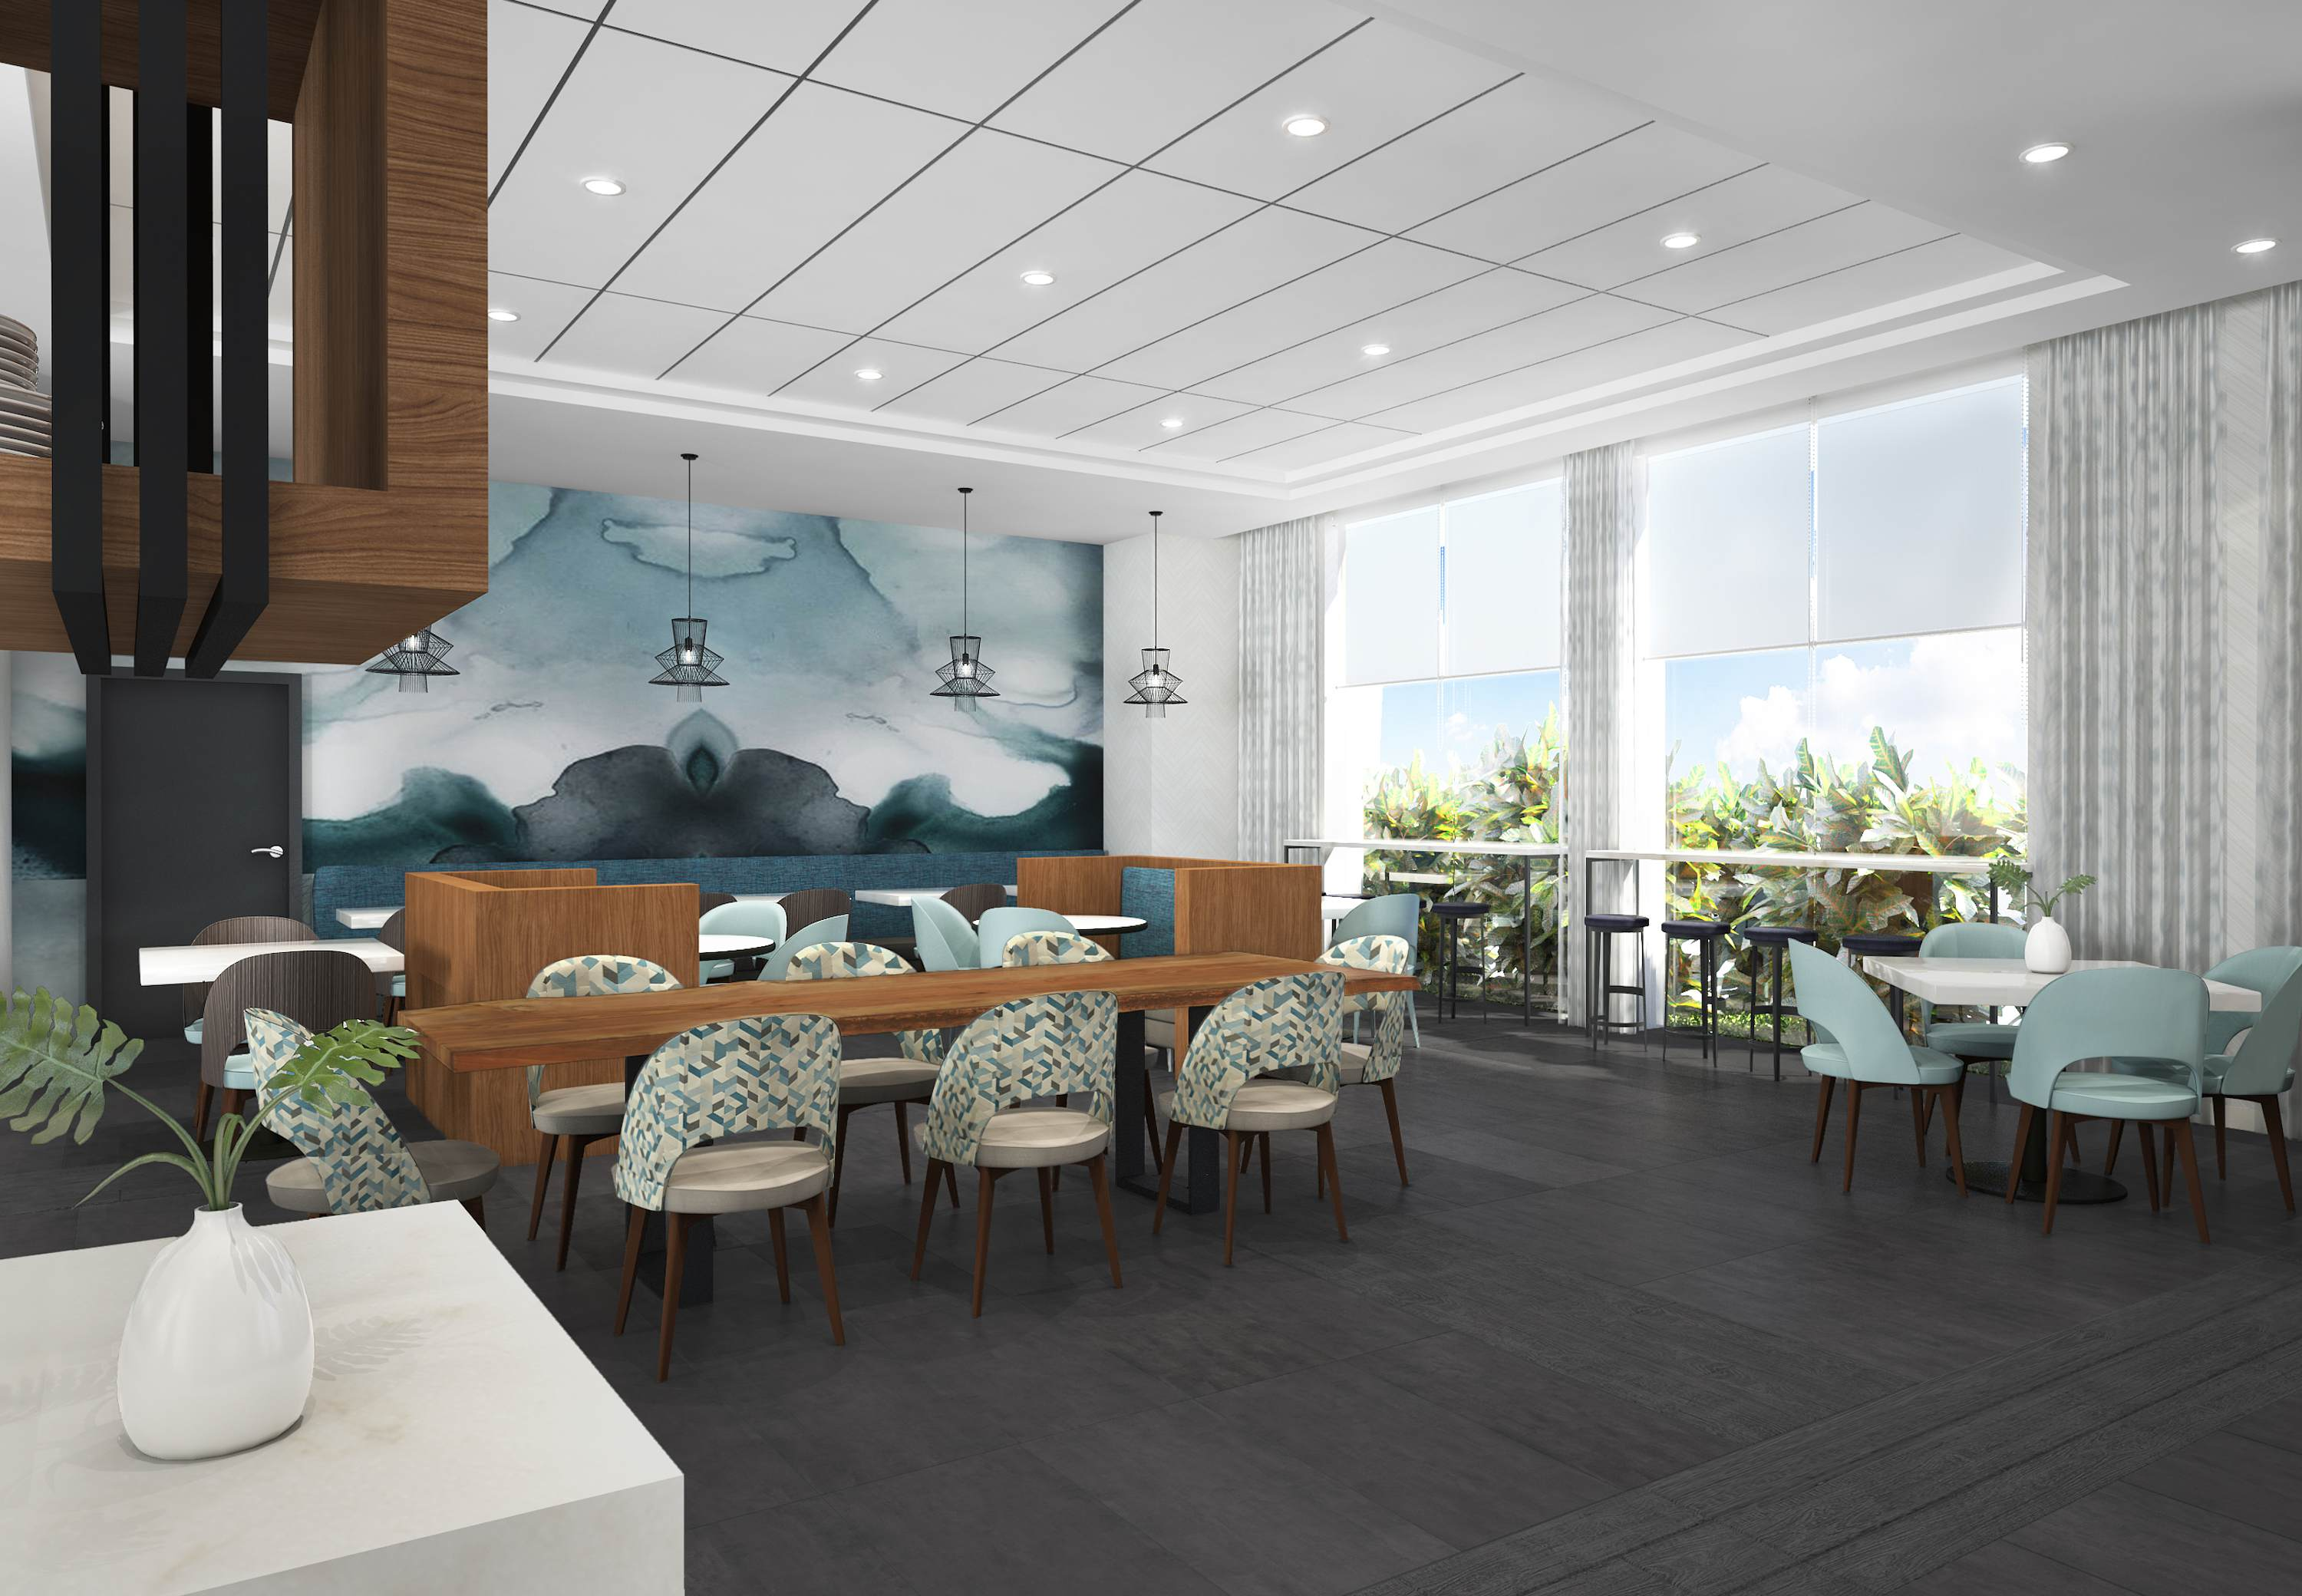 TownePlace Suites by Marriott Miami Airport image 1